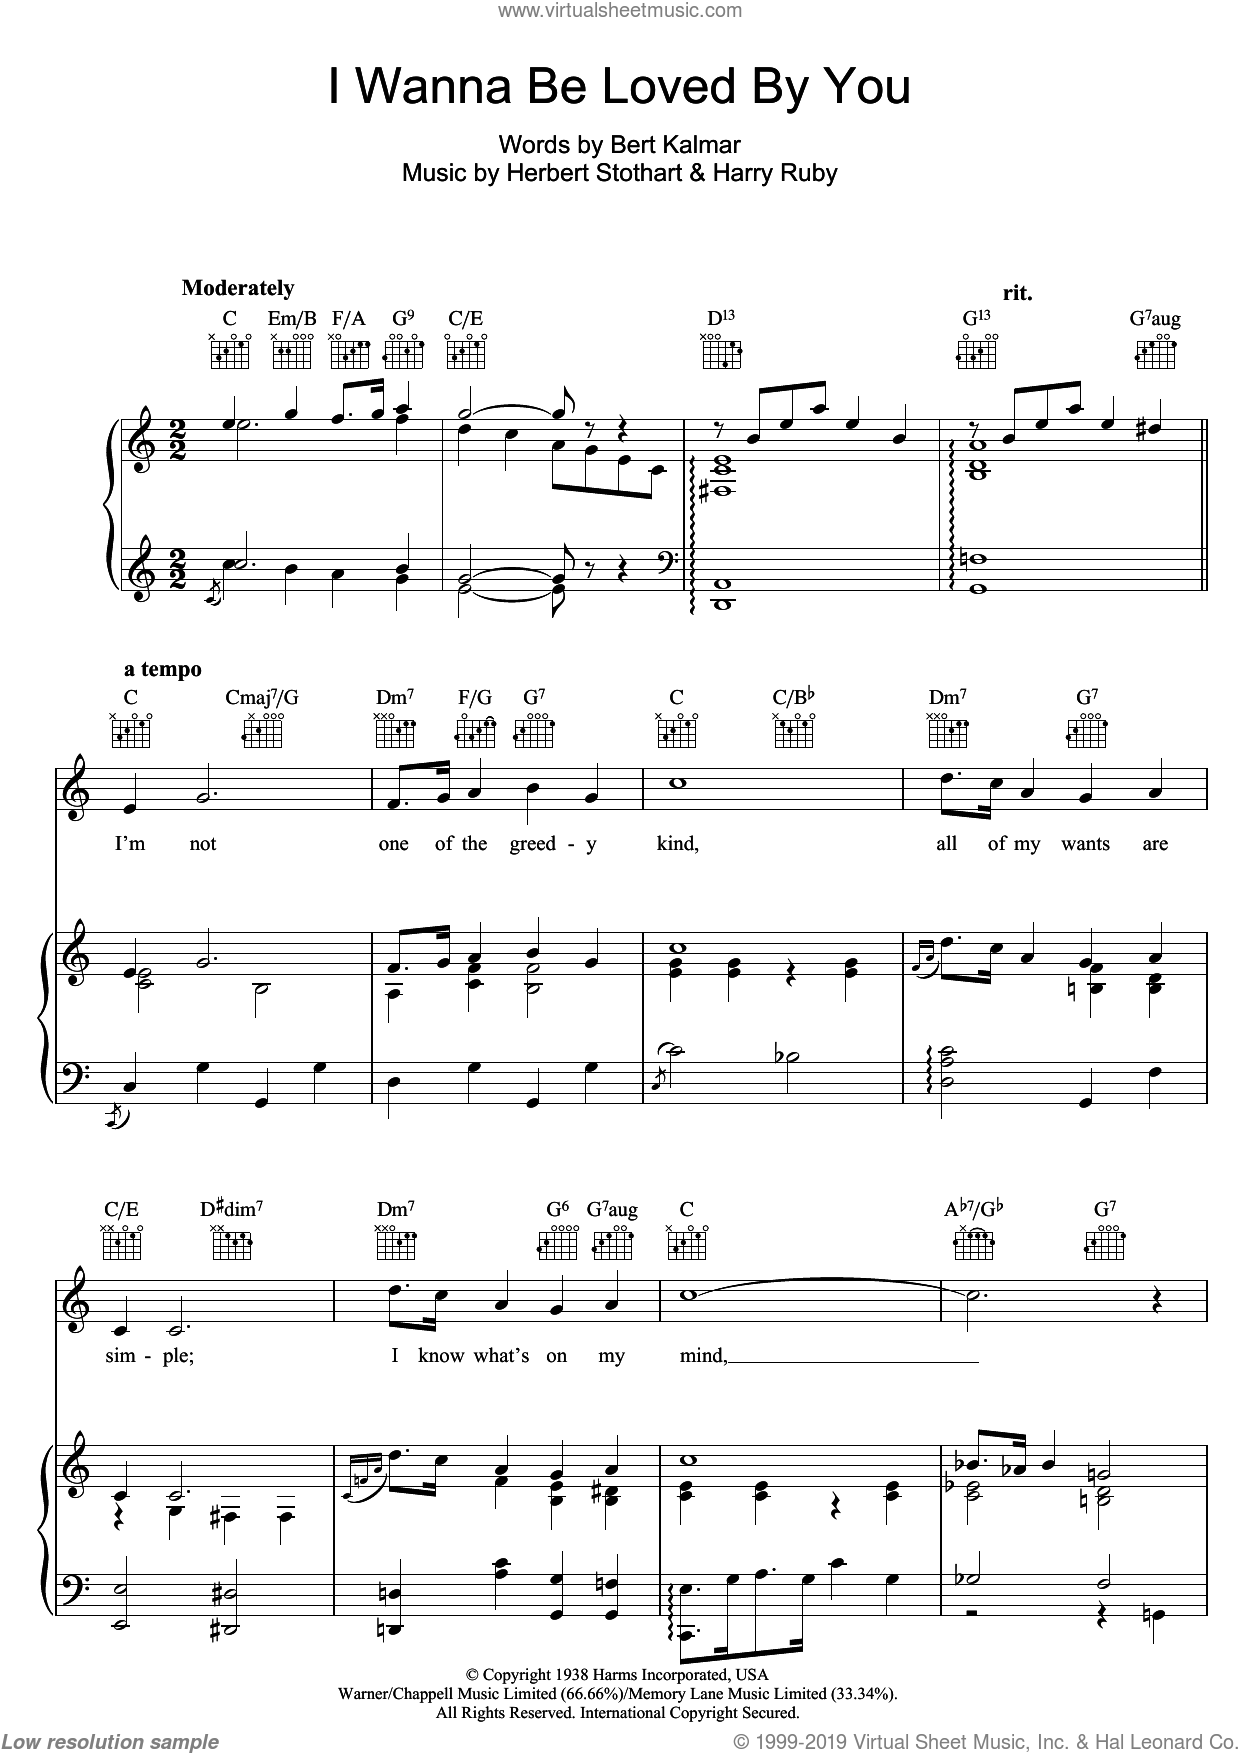 I Wanna Be Loved By You sheet music for voice, piano or guitar by Harry Ruby